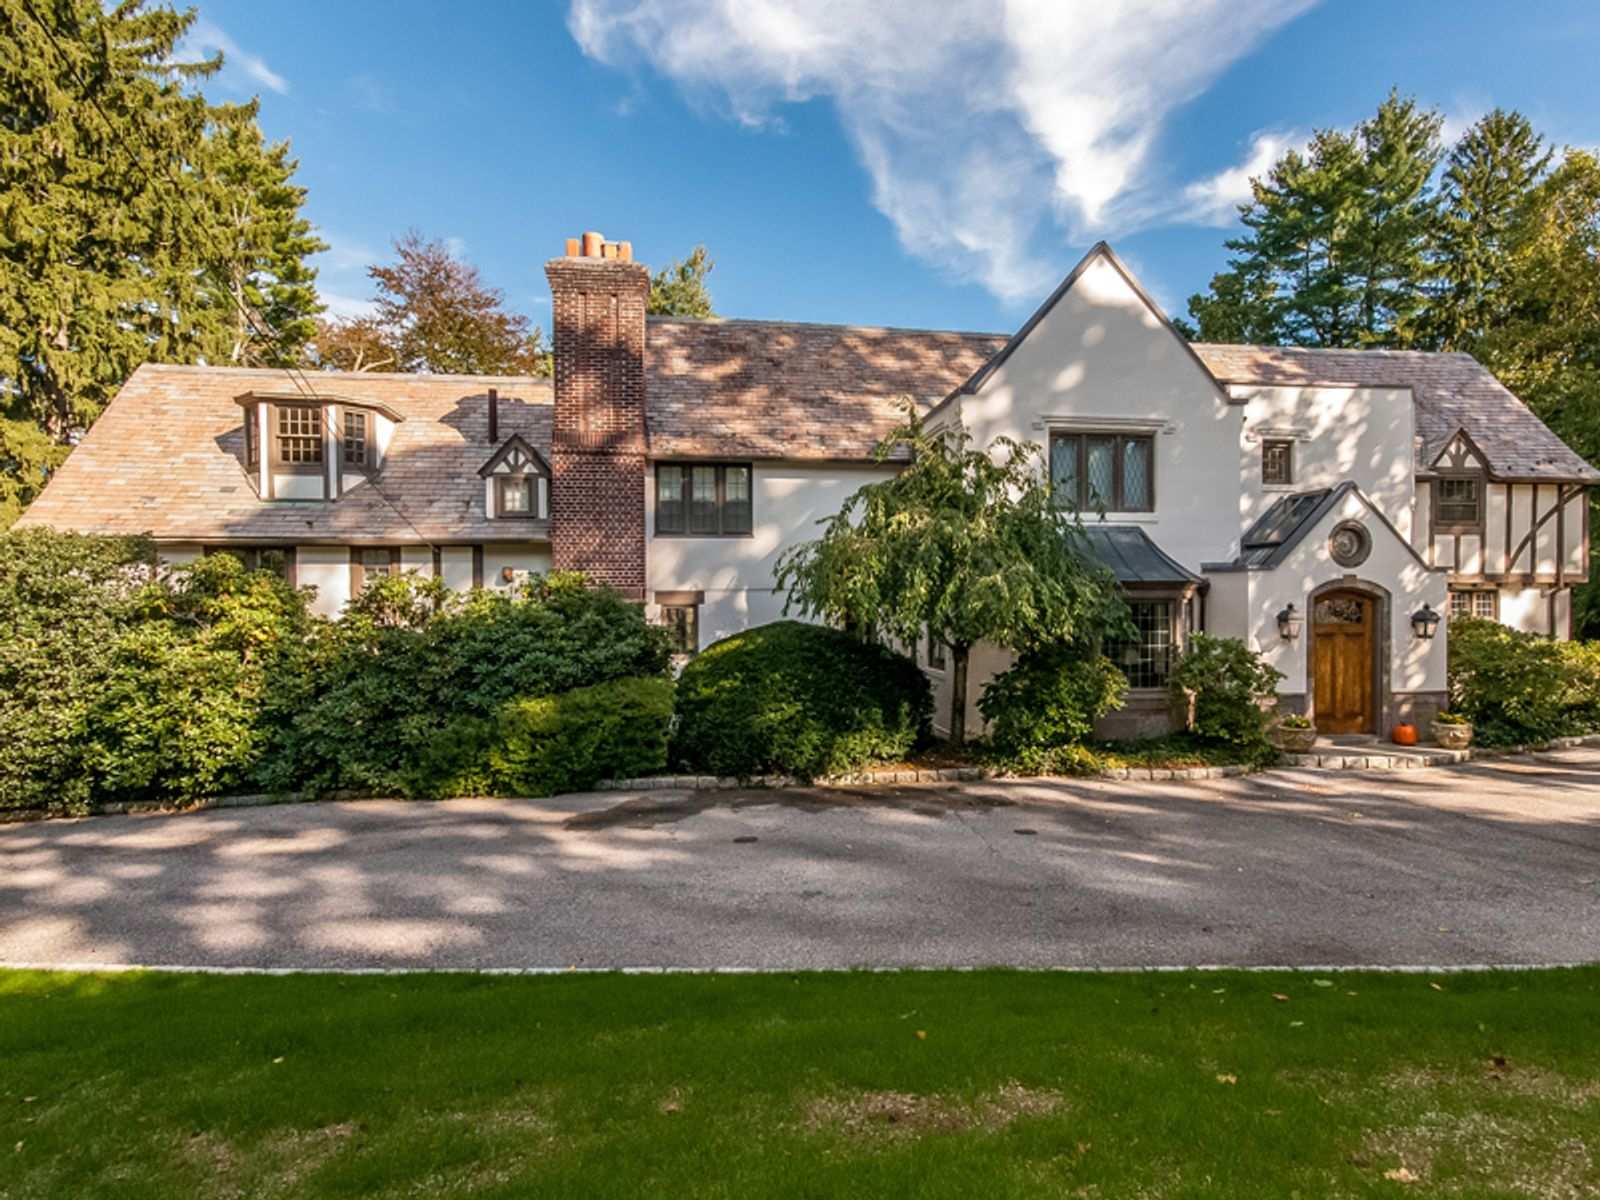 Near Town Manor House with Cottage, Greenwich CT Single Family Home - Greenwich Real Estate